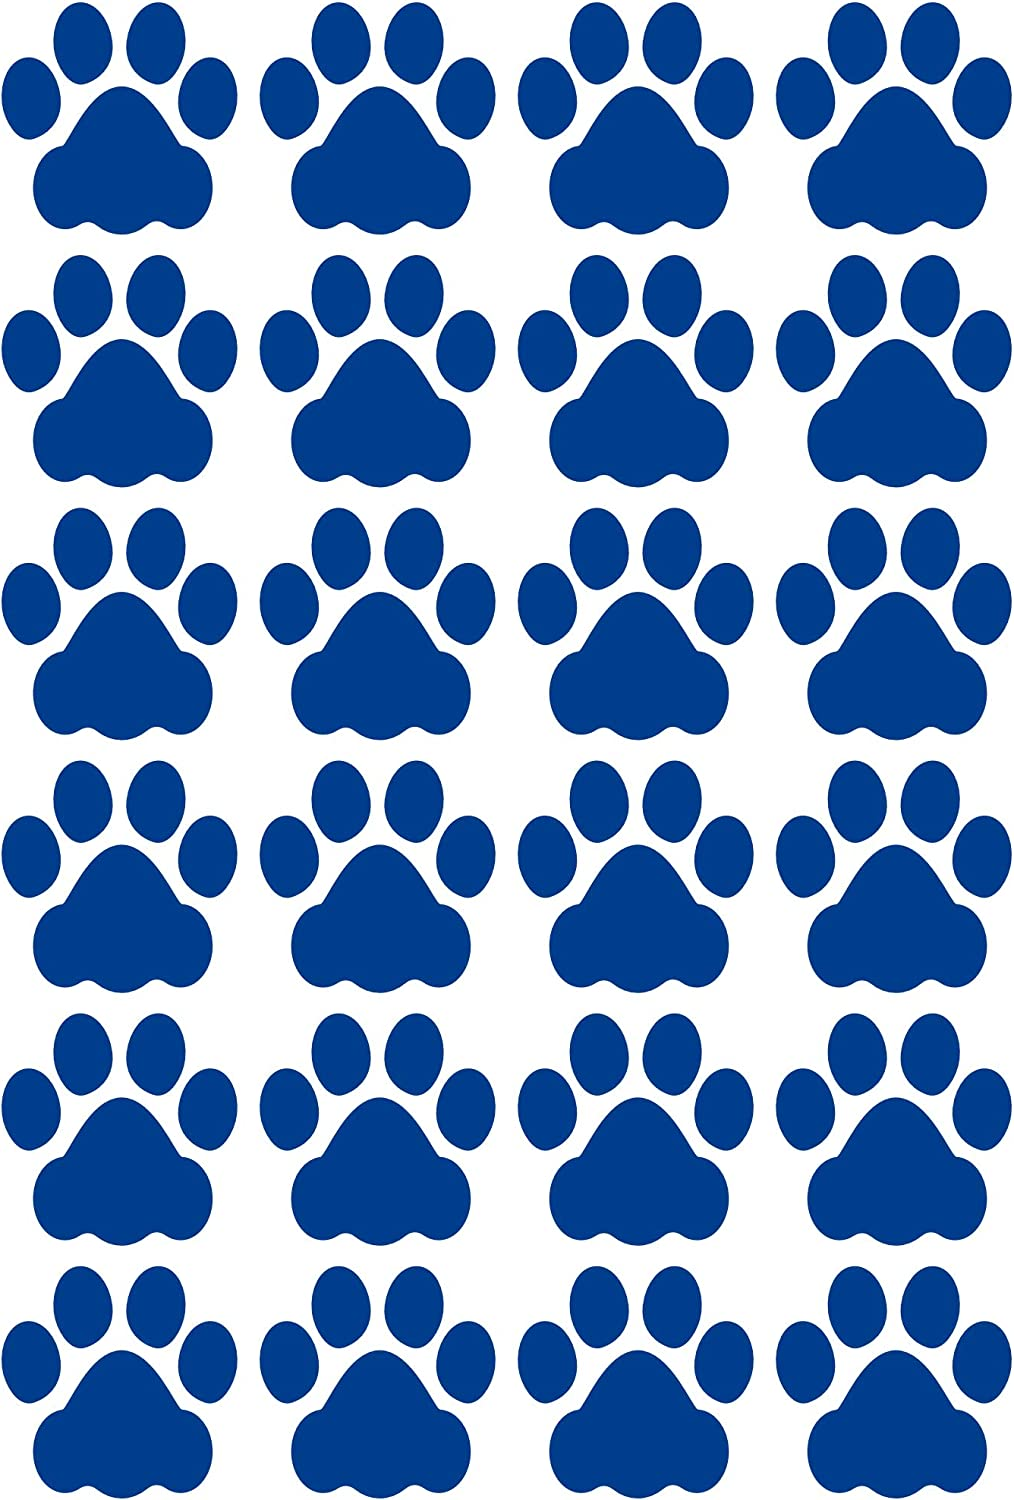 LiteMark Durable 3 Inch Dog Paw Print Decals | Great for Floors, Ceilings, Walls, Laptops, and Most Smooth Surfaces | Gloss Finish Blue (Pack of 24 Paw Prints)